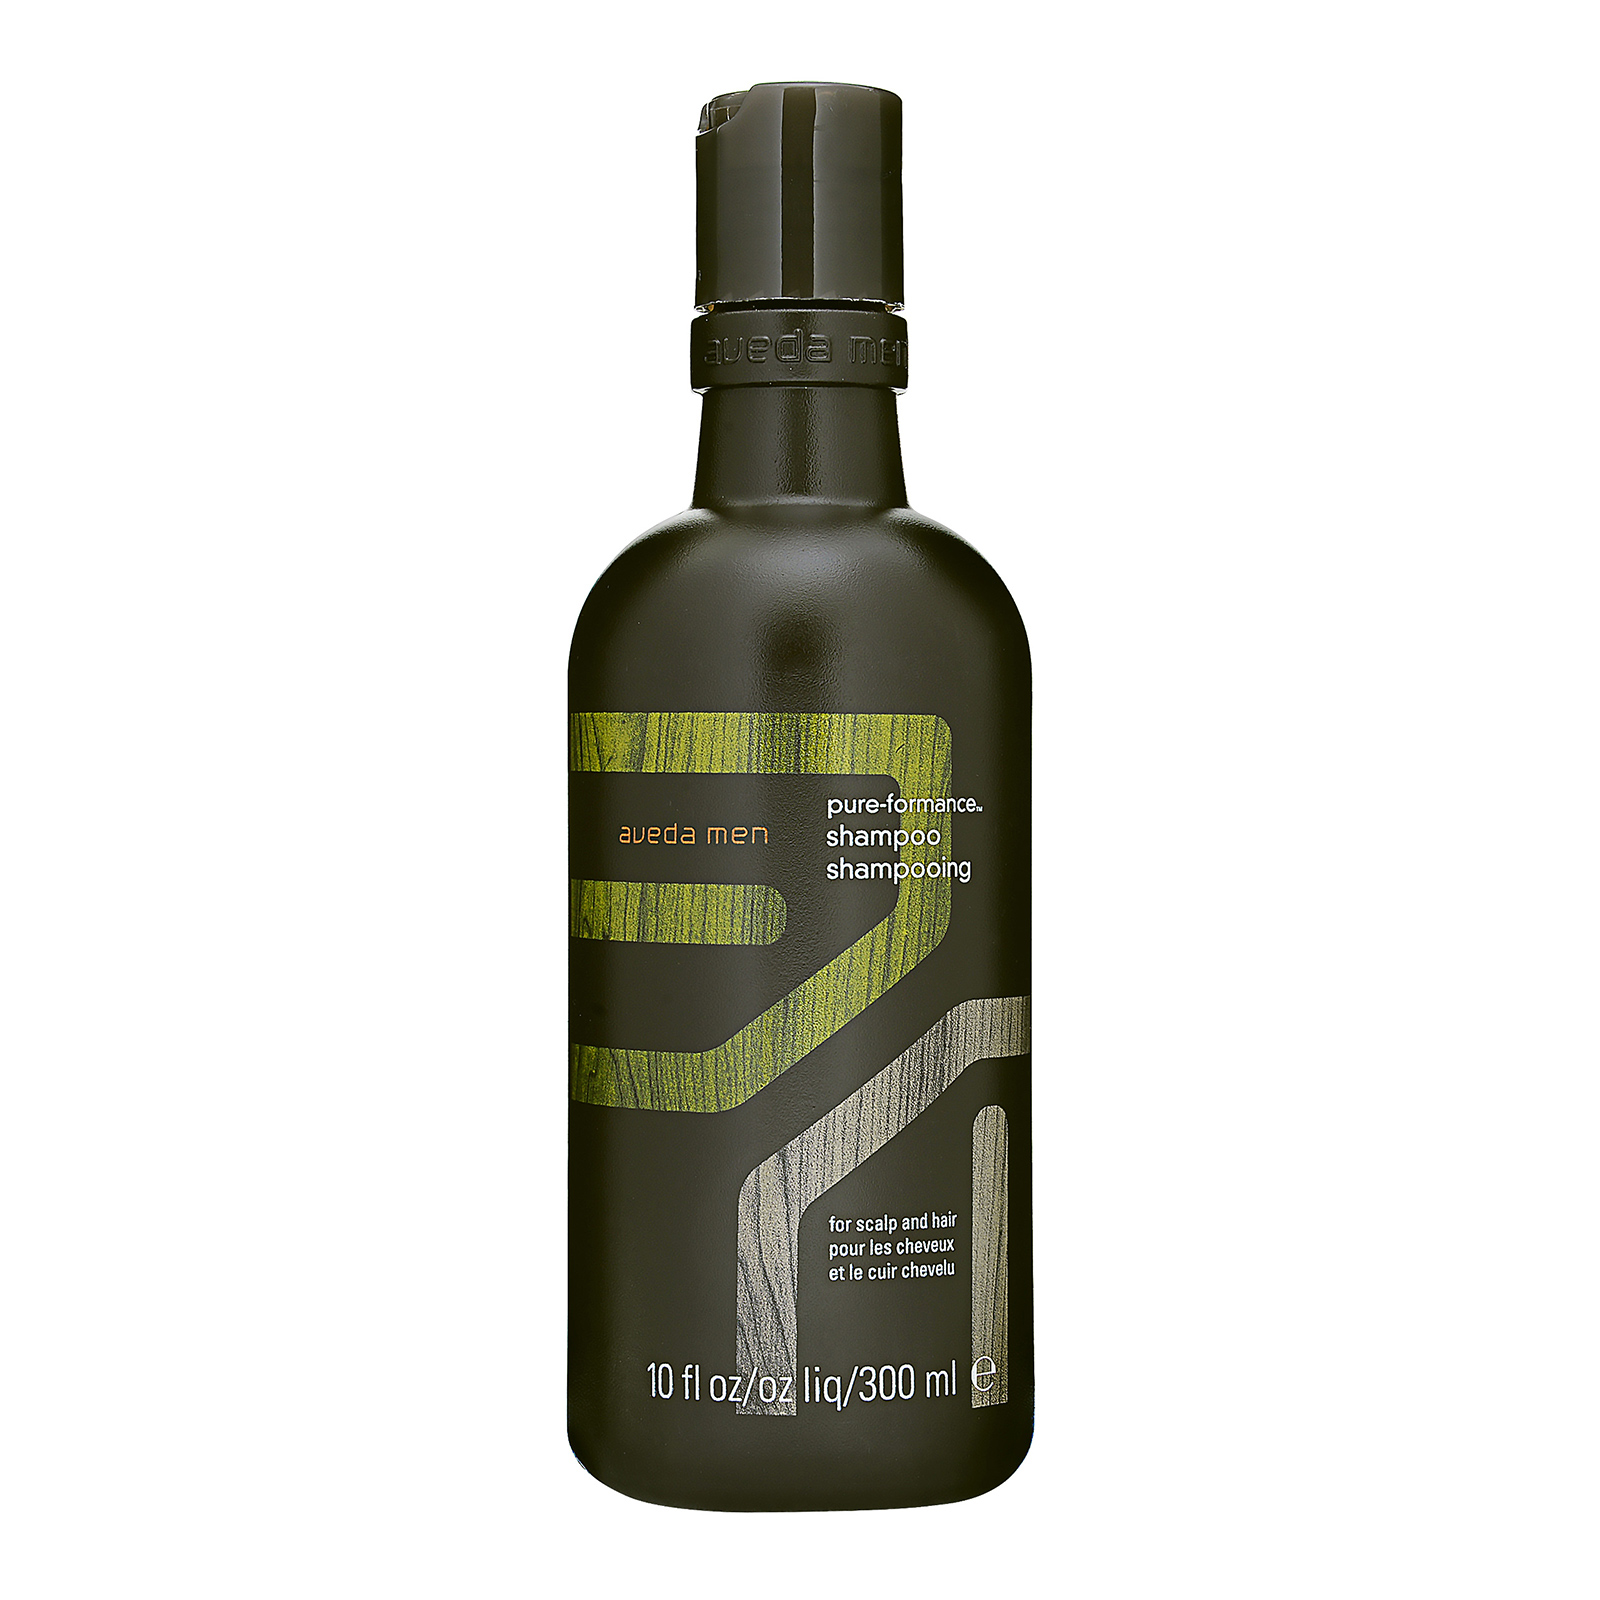 Aveda Men Pure-Formance  Shampoo 10oz, 300ml from Cosme-De.com